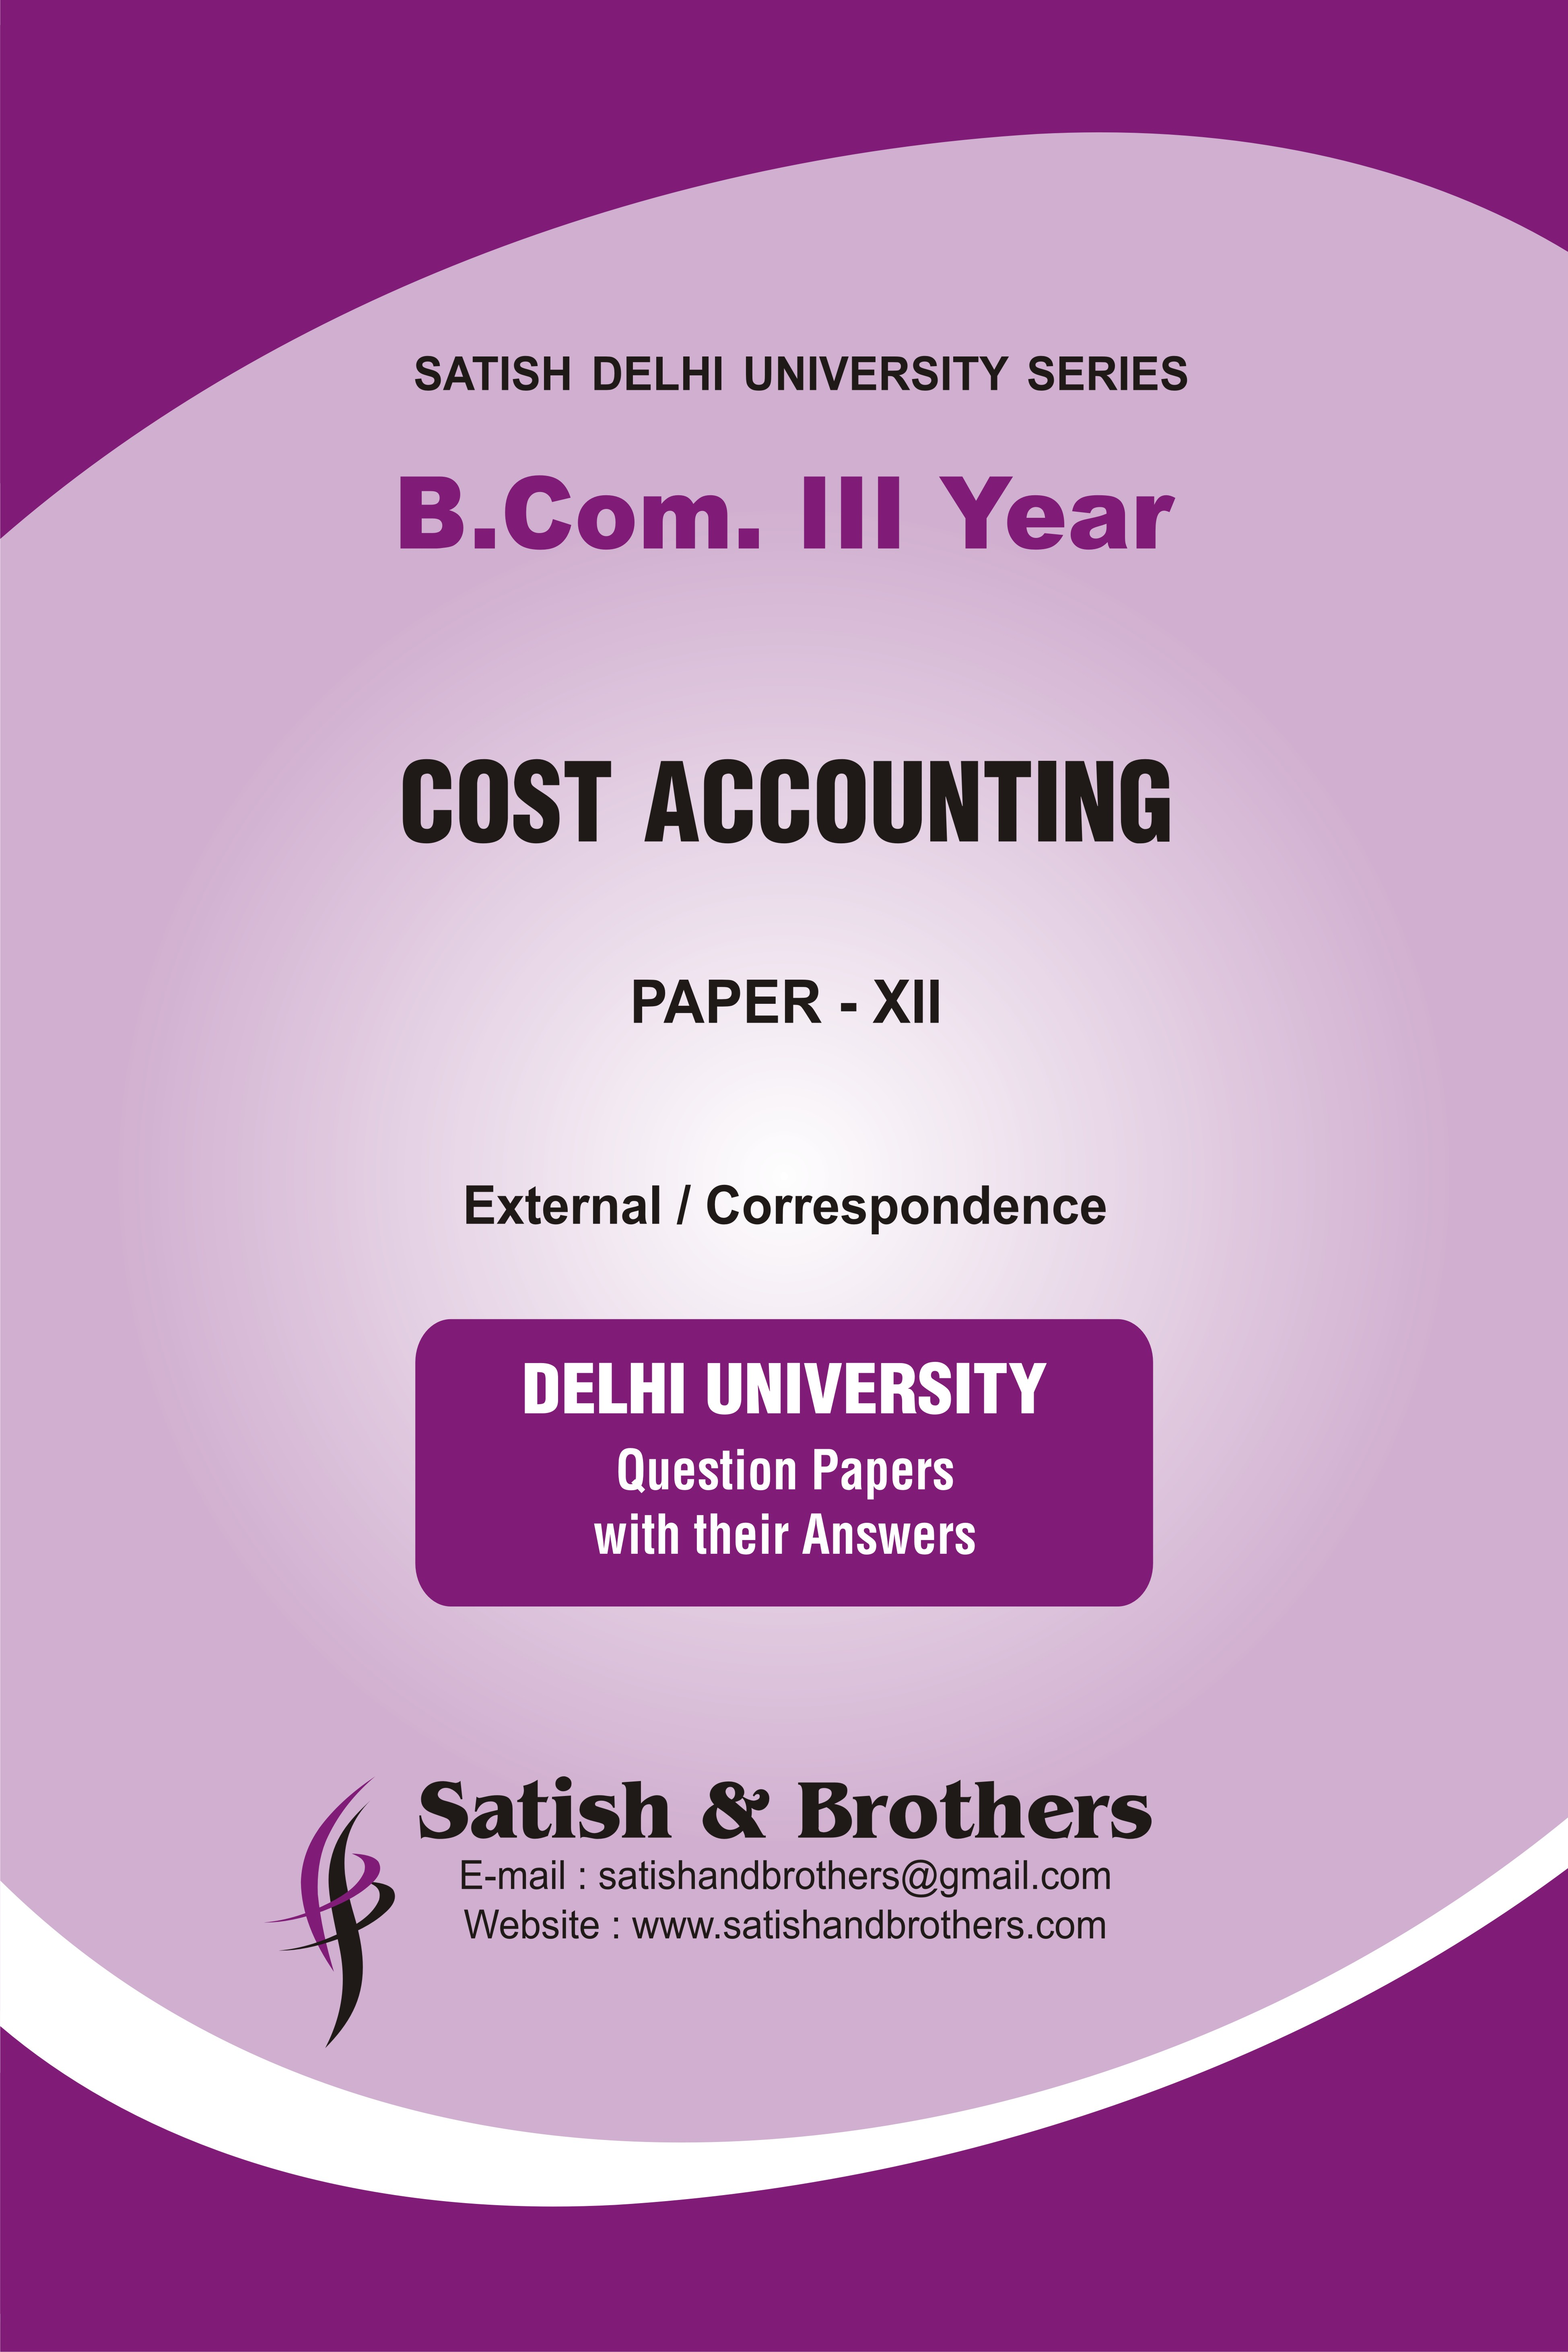 cost accounting question paper Question paper for advanced cost accounting 2015 - 2016 part 1 by university of mumbai for the course mcom accountancy (idol.